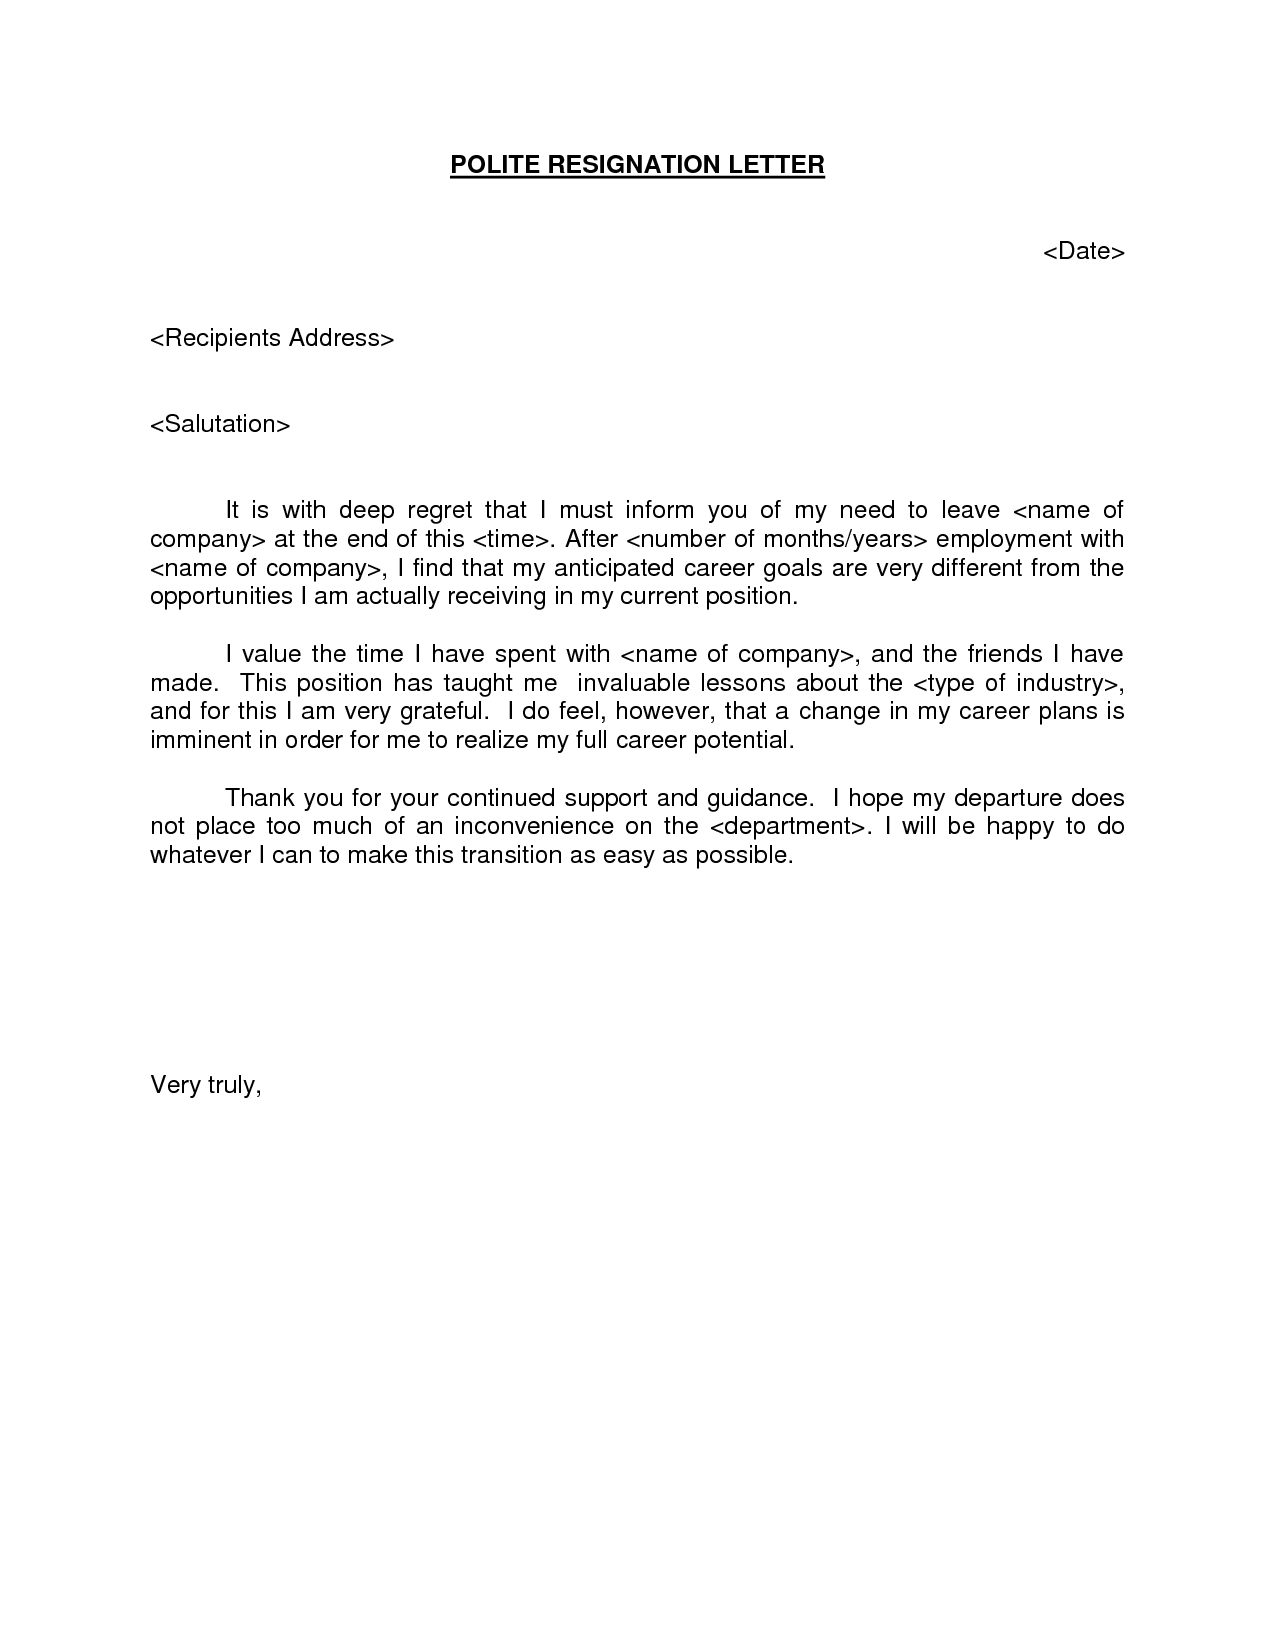 resignation letter letter of resignation meaning effective immediately and simple